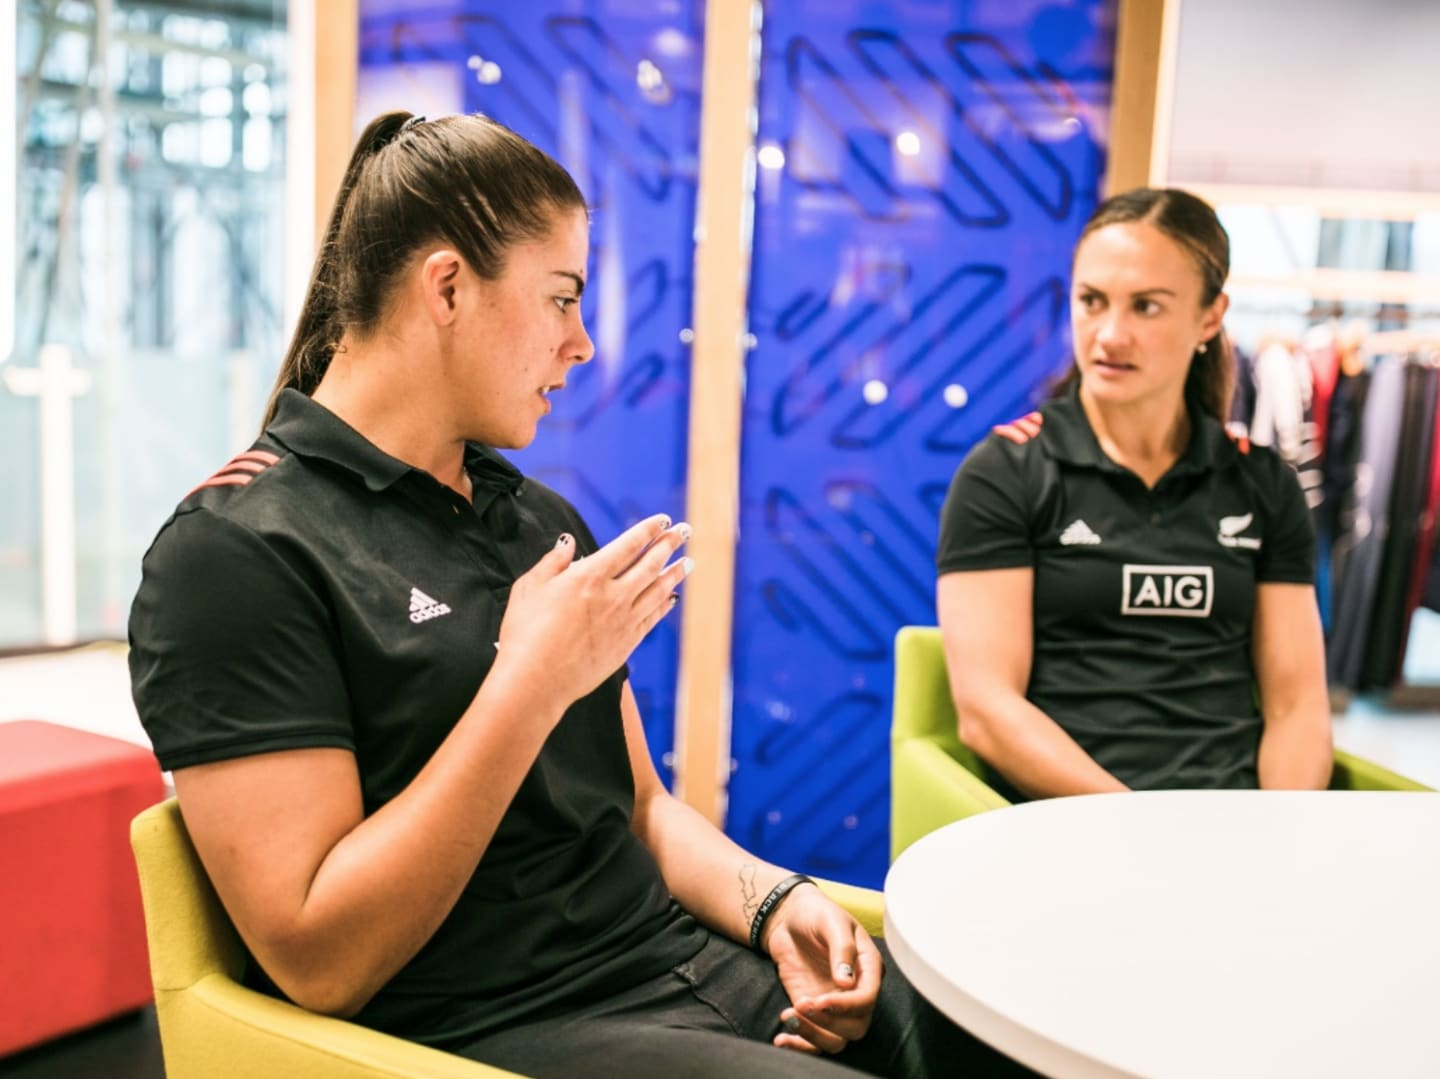 Les Elders and Eloise Blackwell from the women's rugby team Black Ferns during an interview with GamePlanA